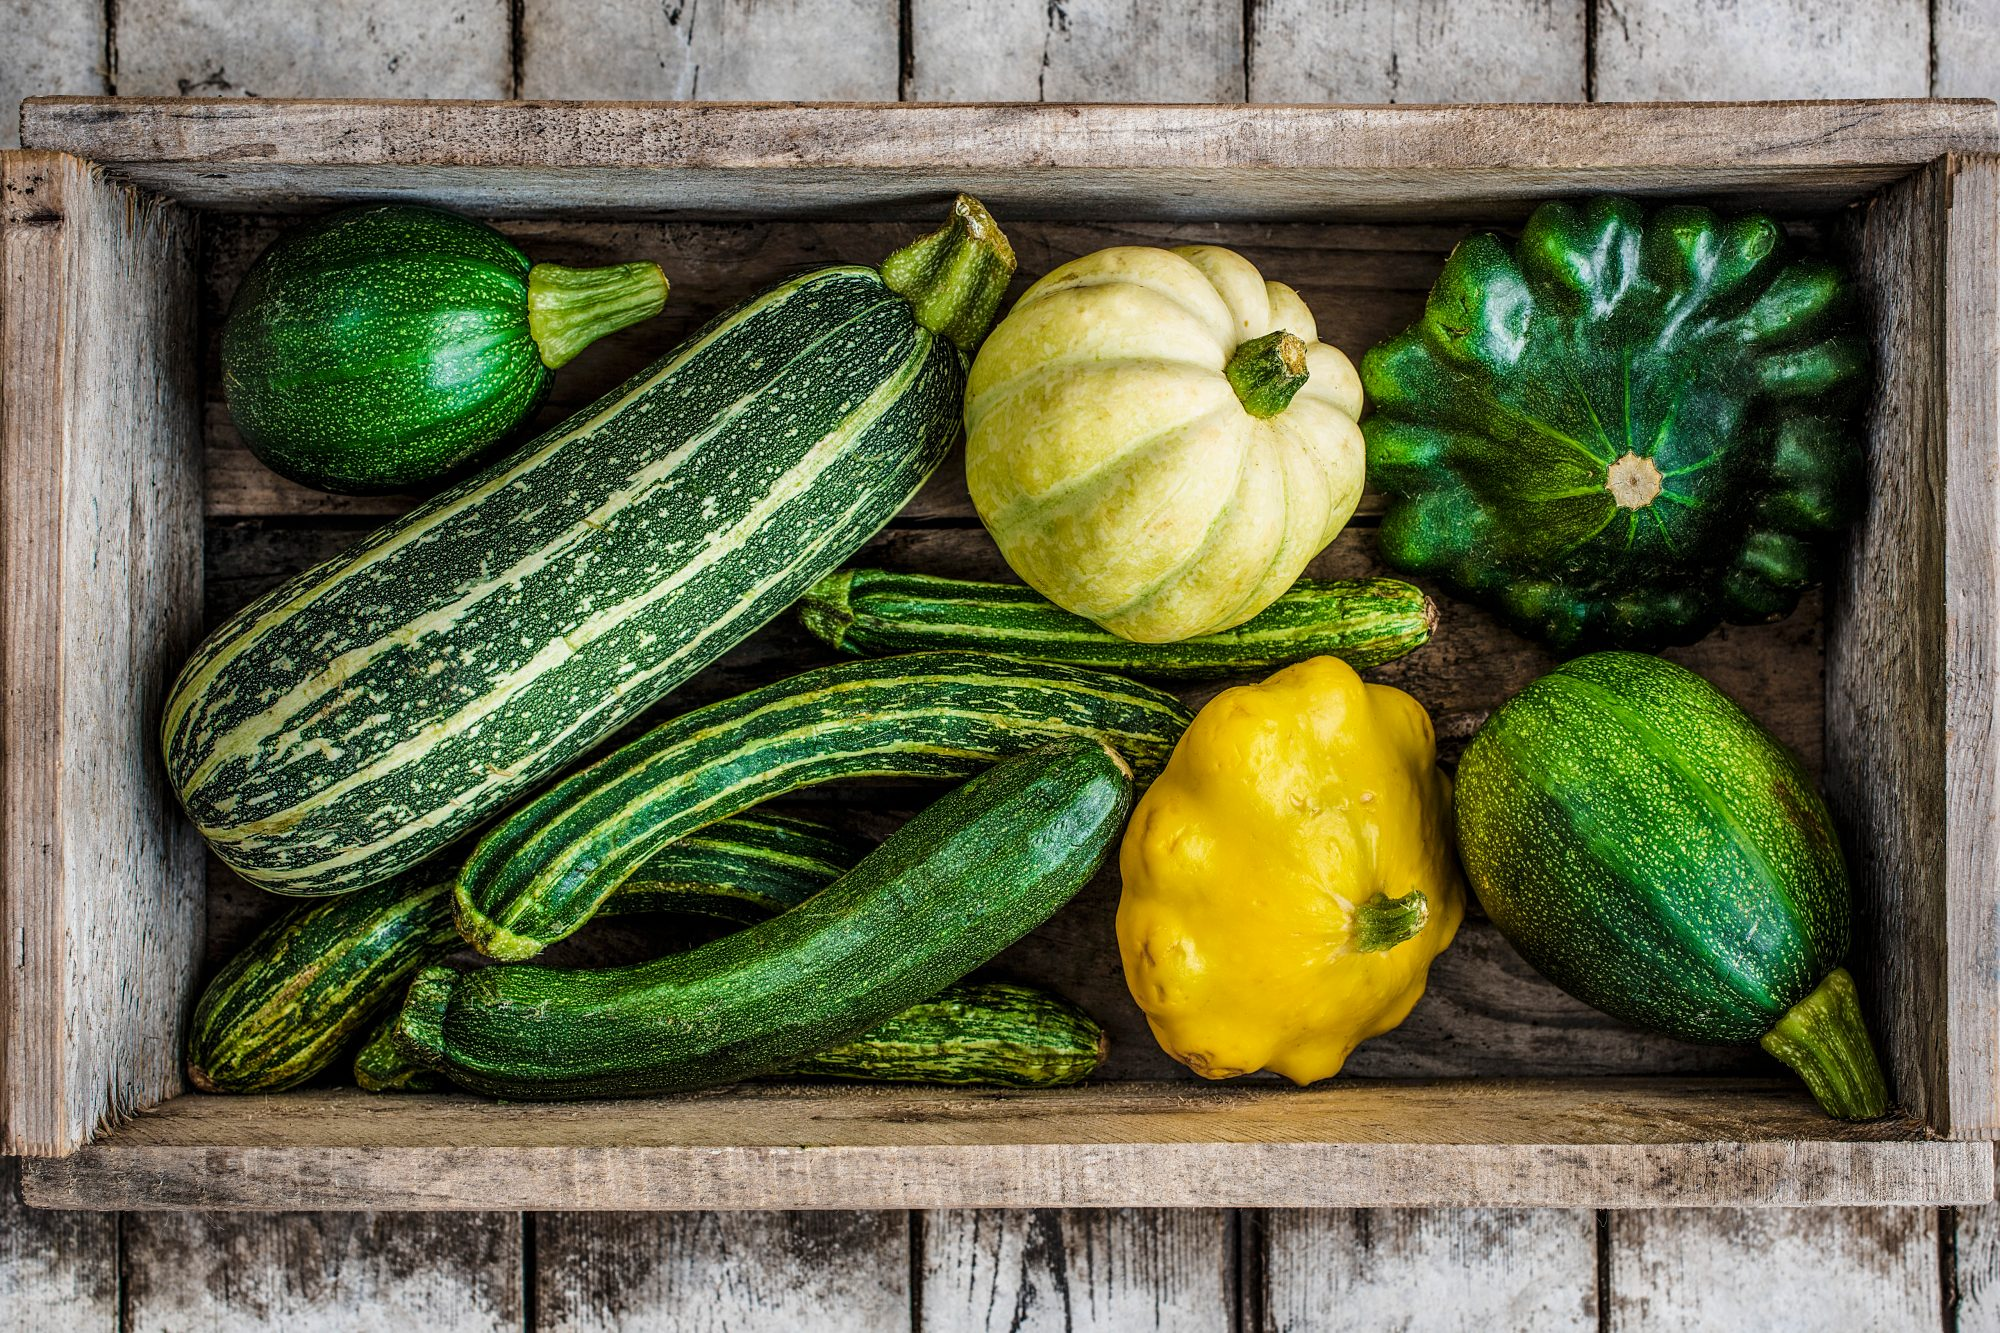 Different types of courgettes view from above